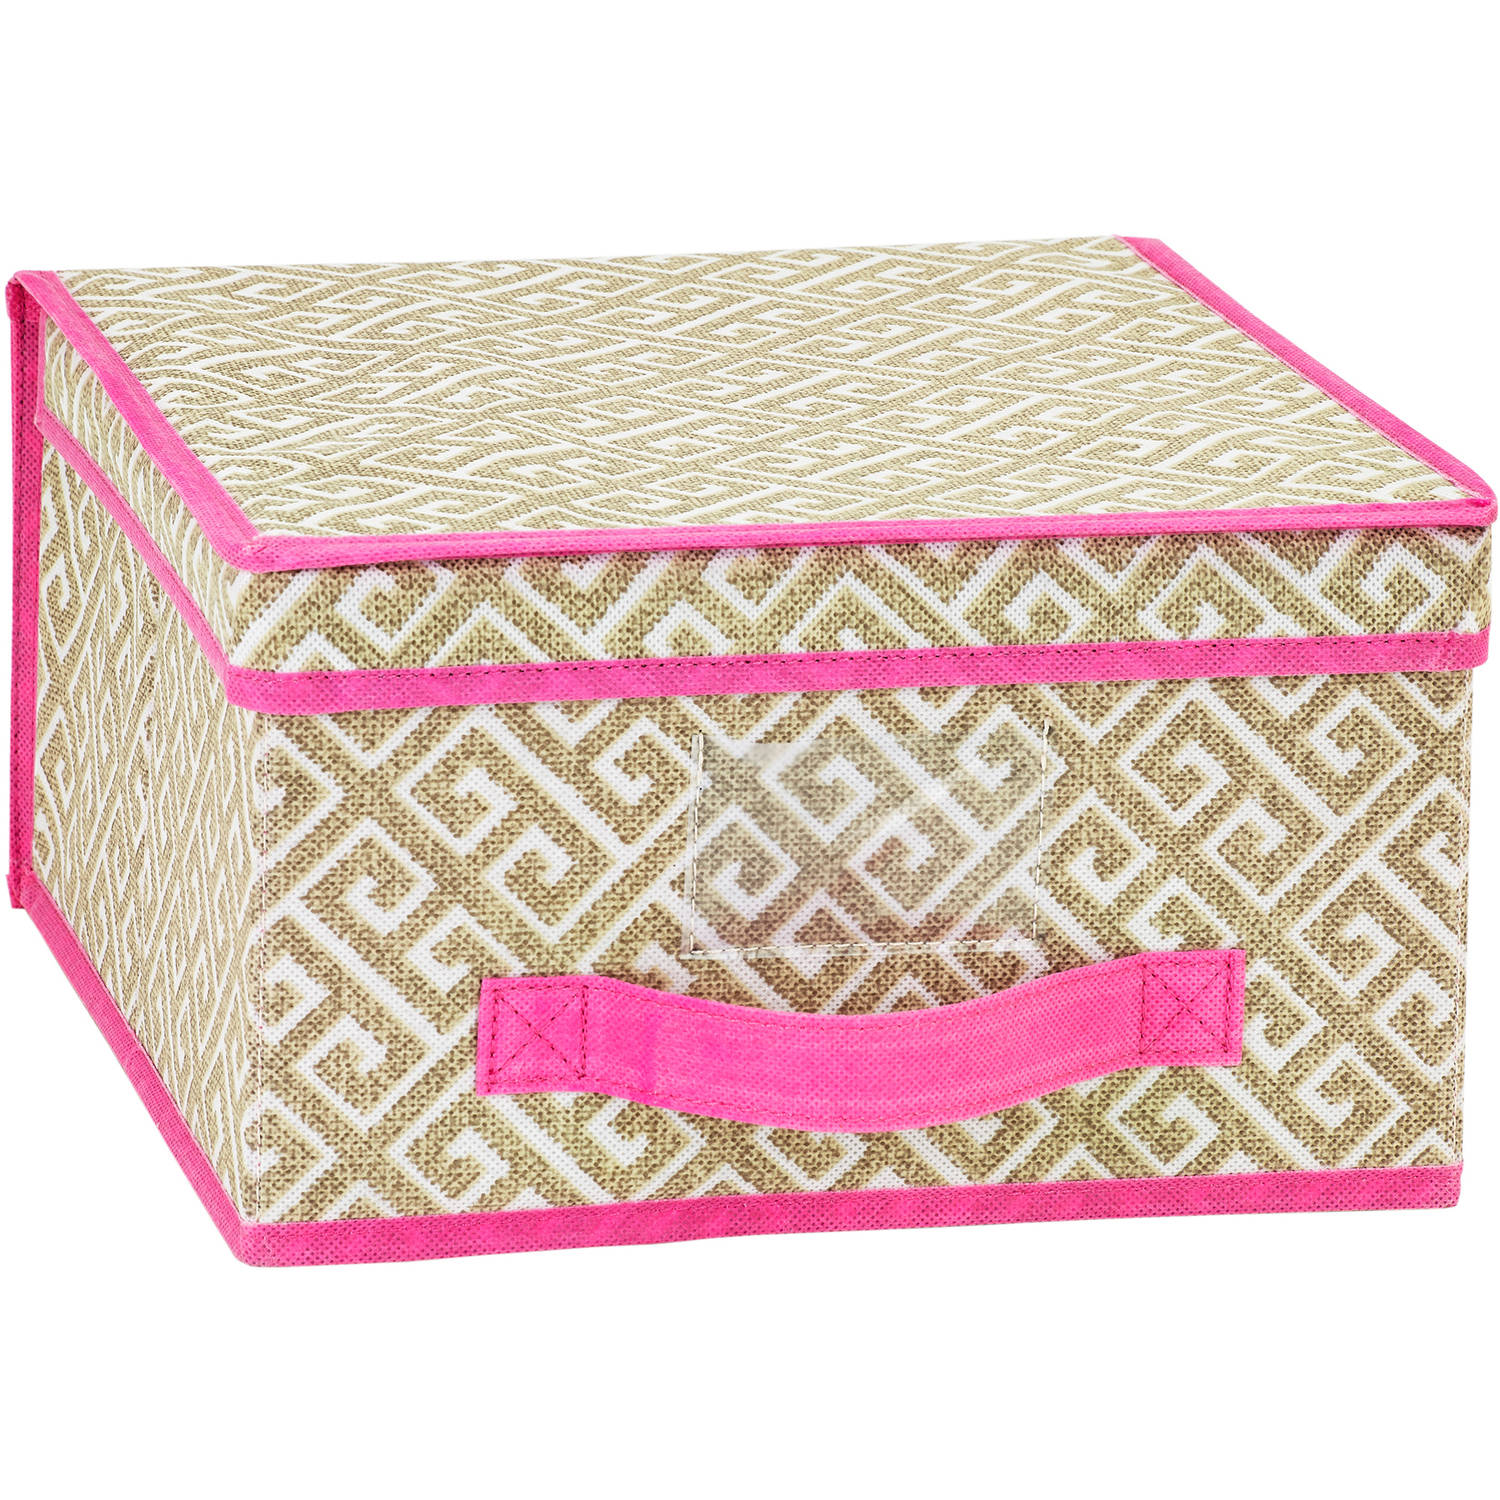 ClosetCandie Hot Pink Storage Box